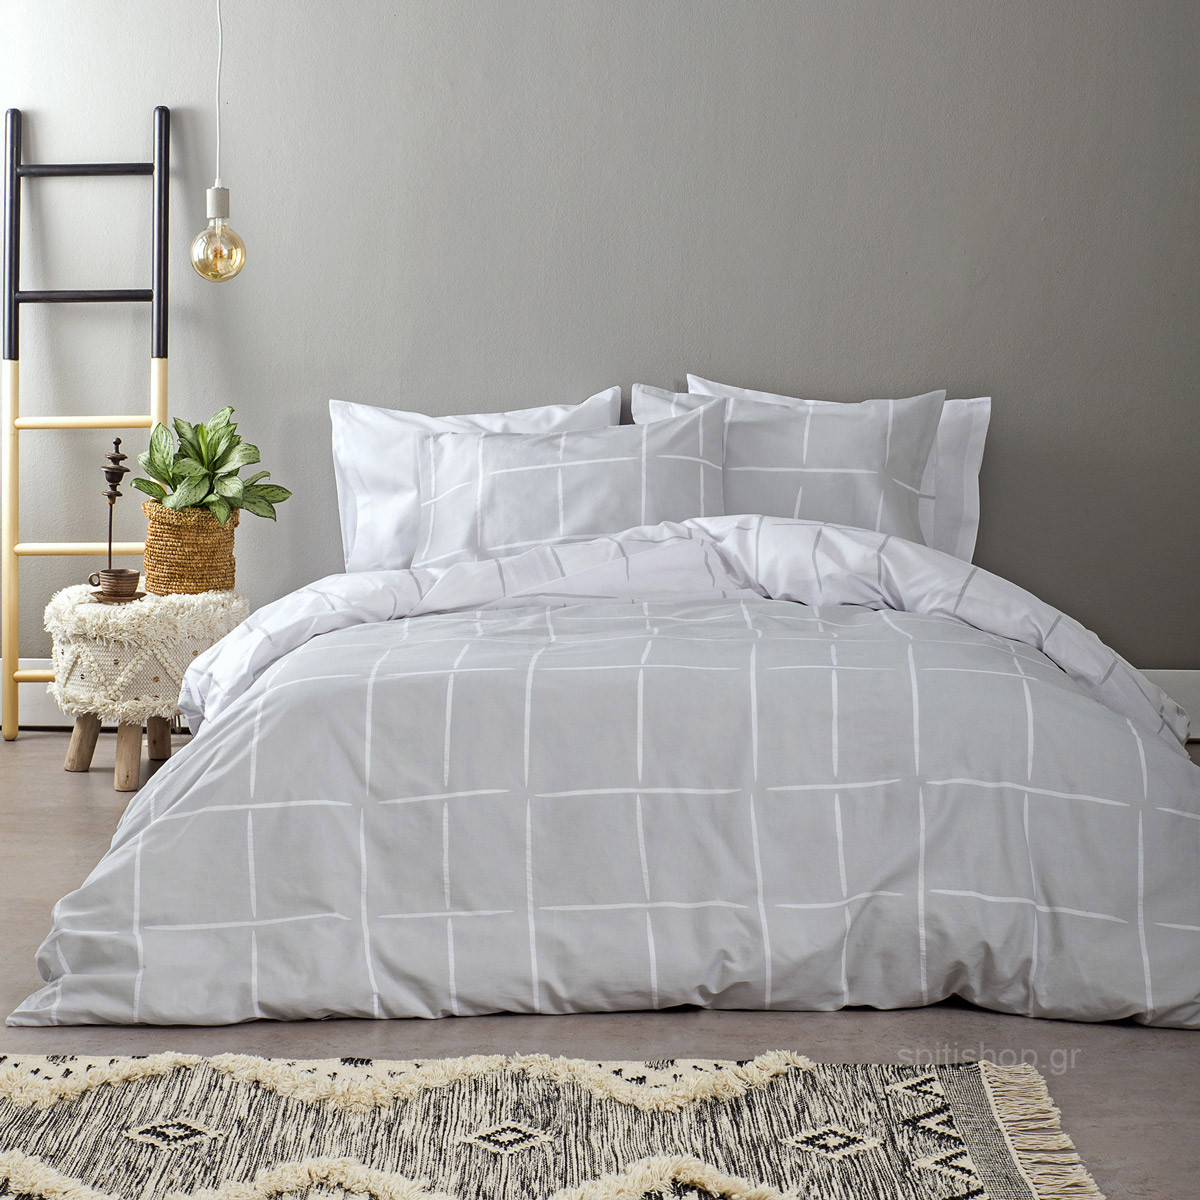 Σεντόνια King Size (Σετ) Nima Bed Linen Infinity Grey